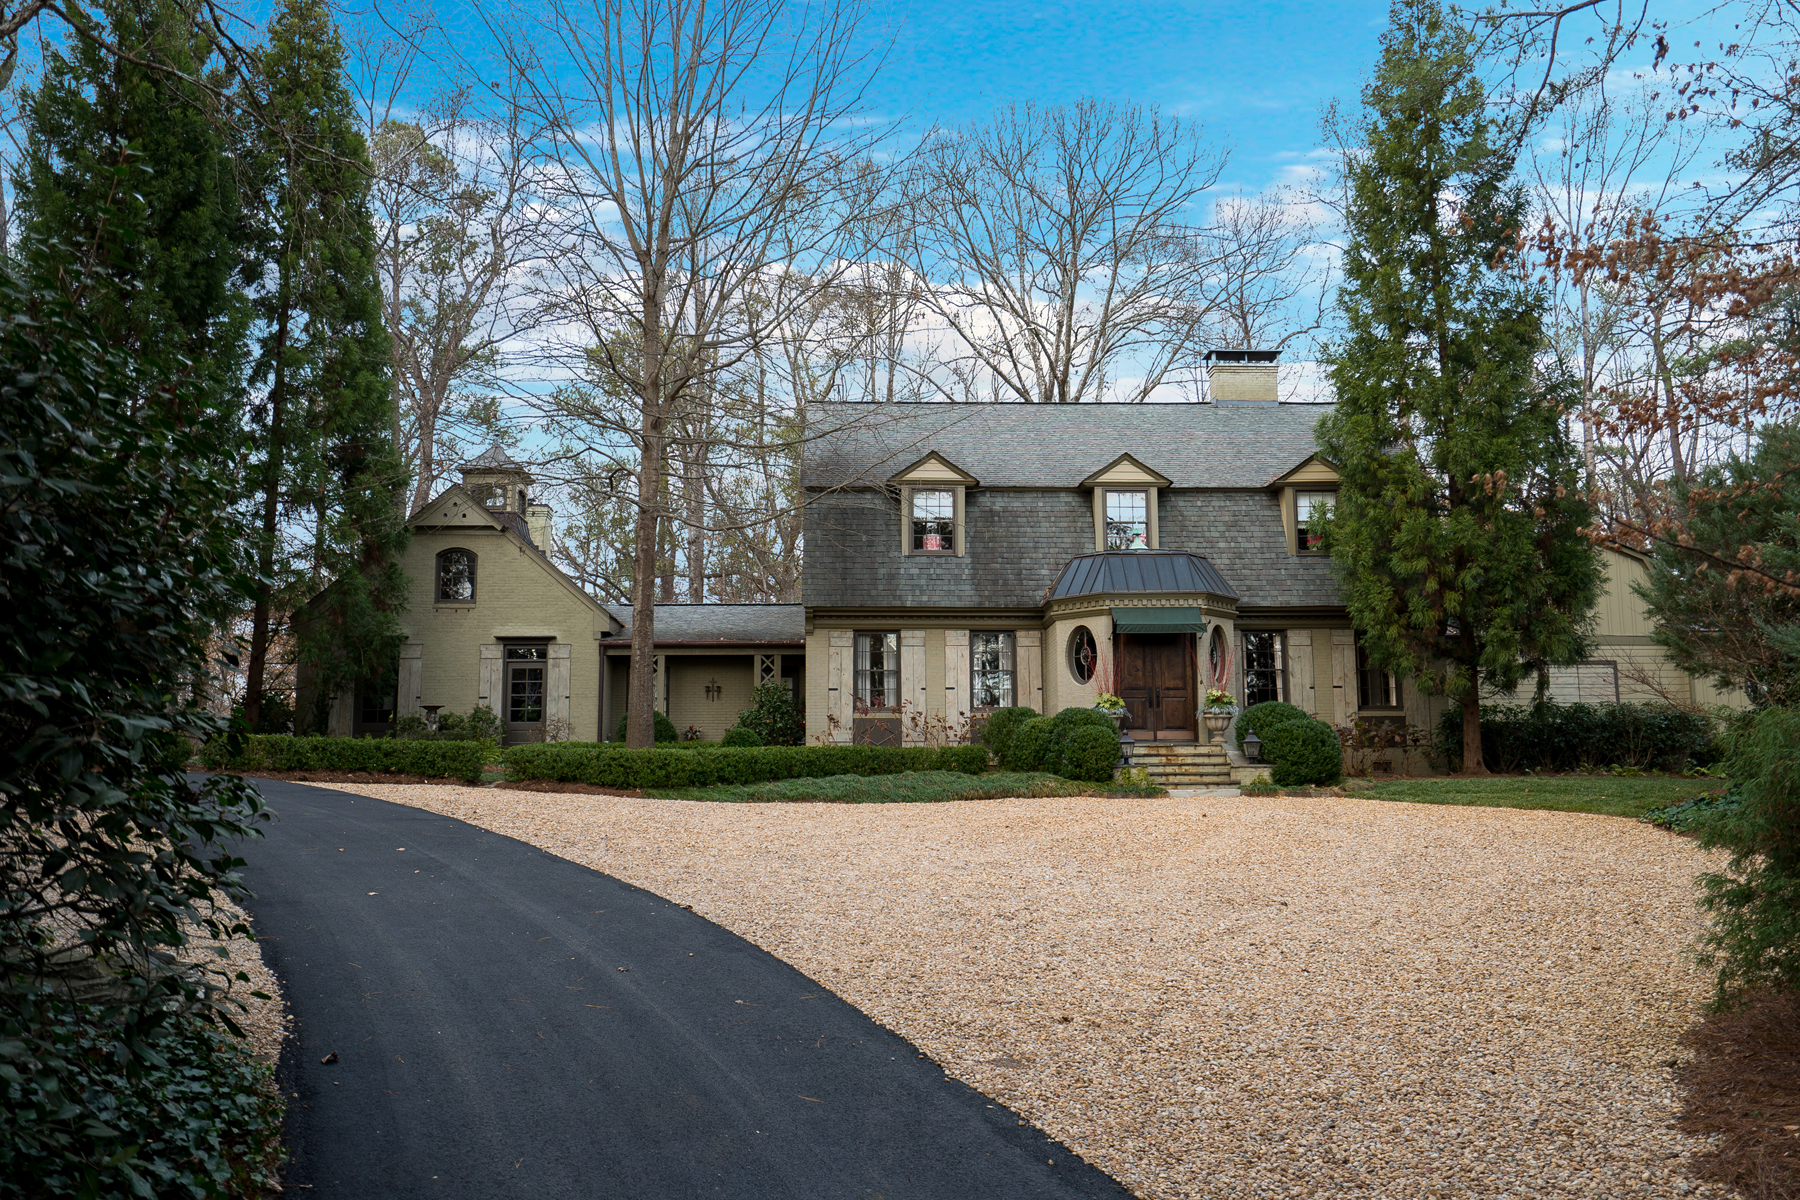 Single Family Home for Active at Sophisticated Chastain Park Home 537 Hillside Drive NW Atlanta, Georgia 30342 United States